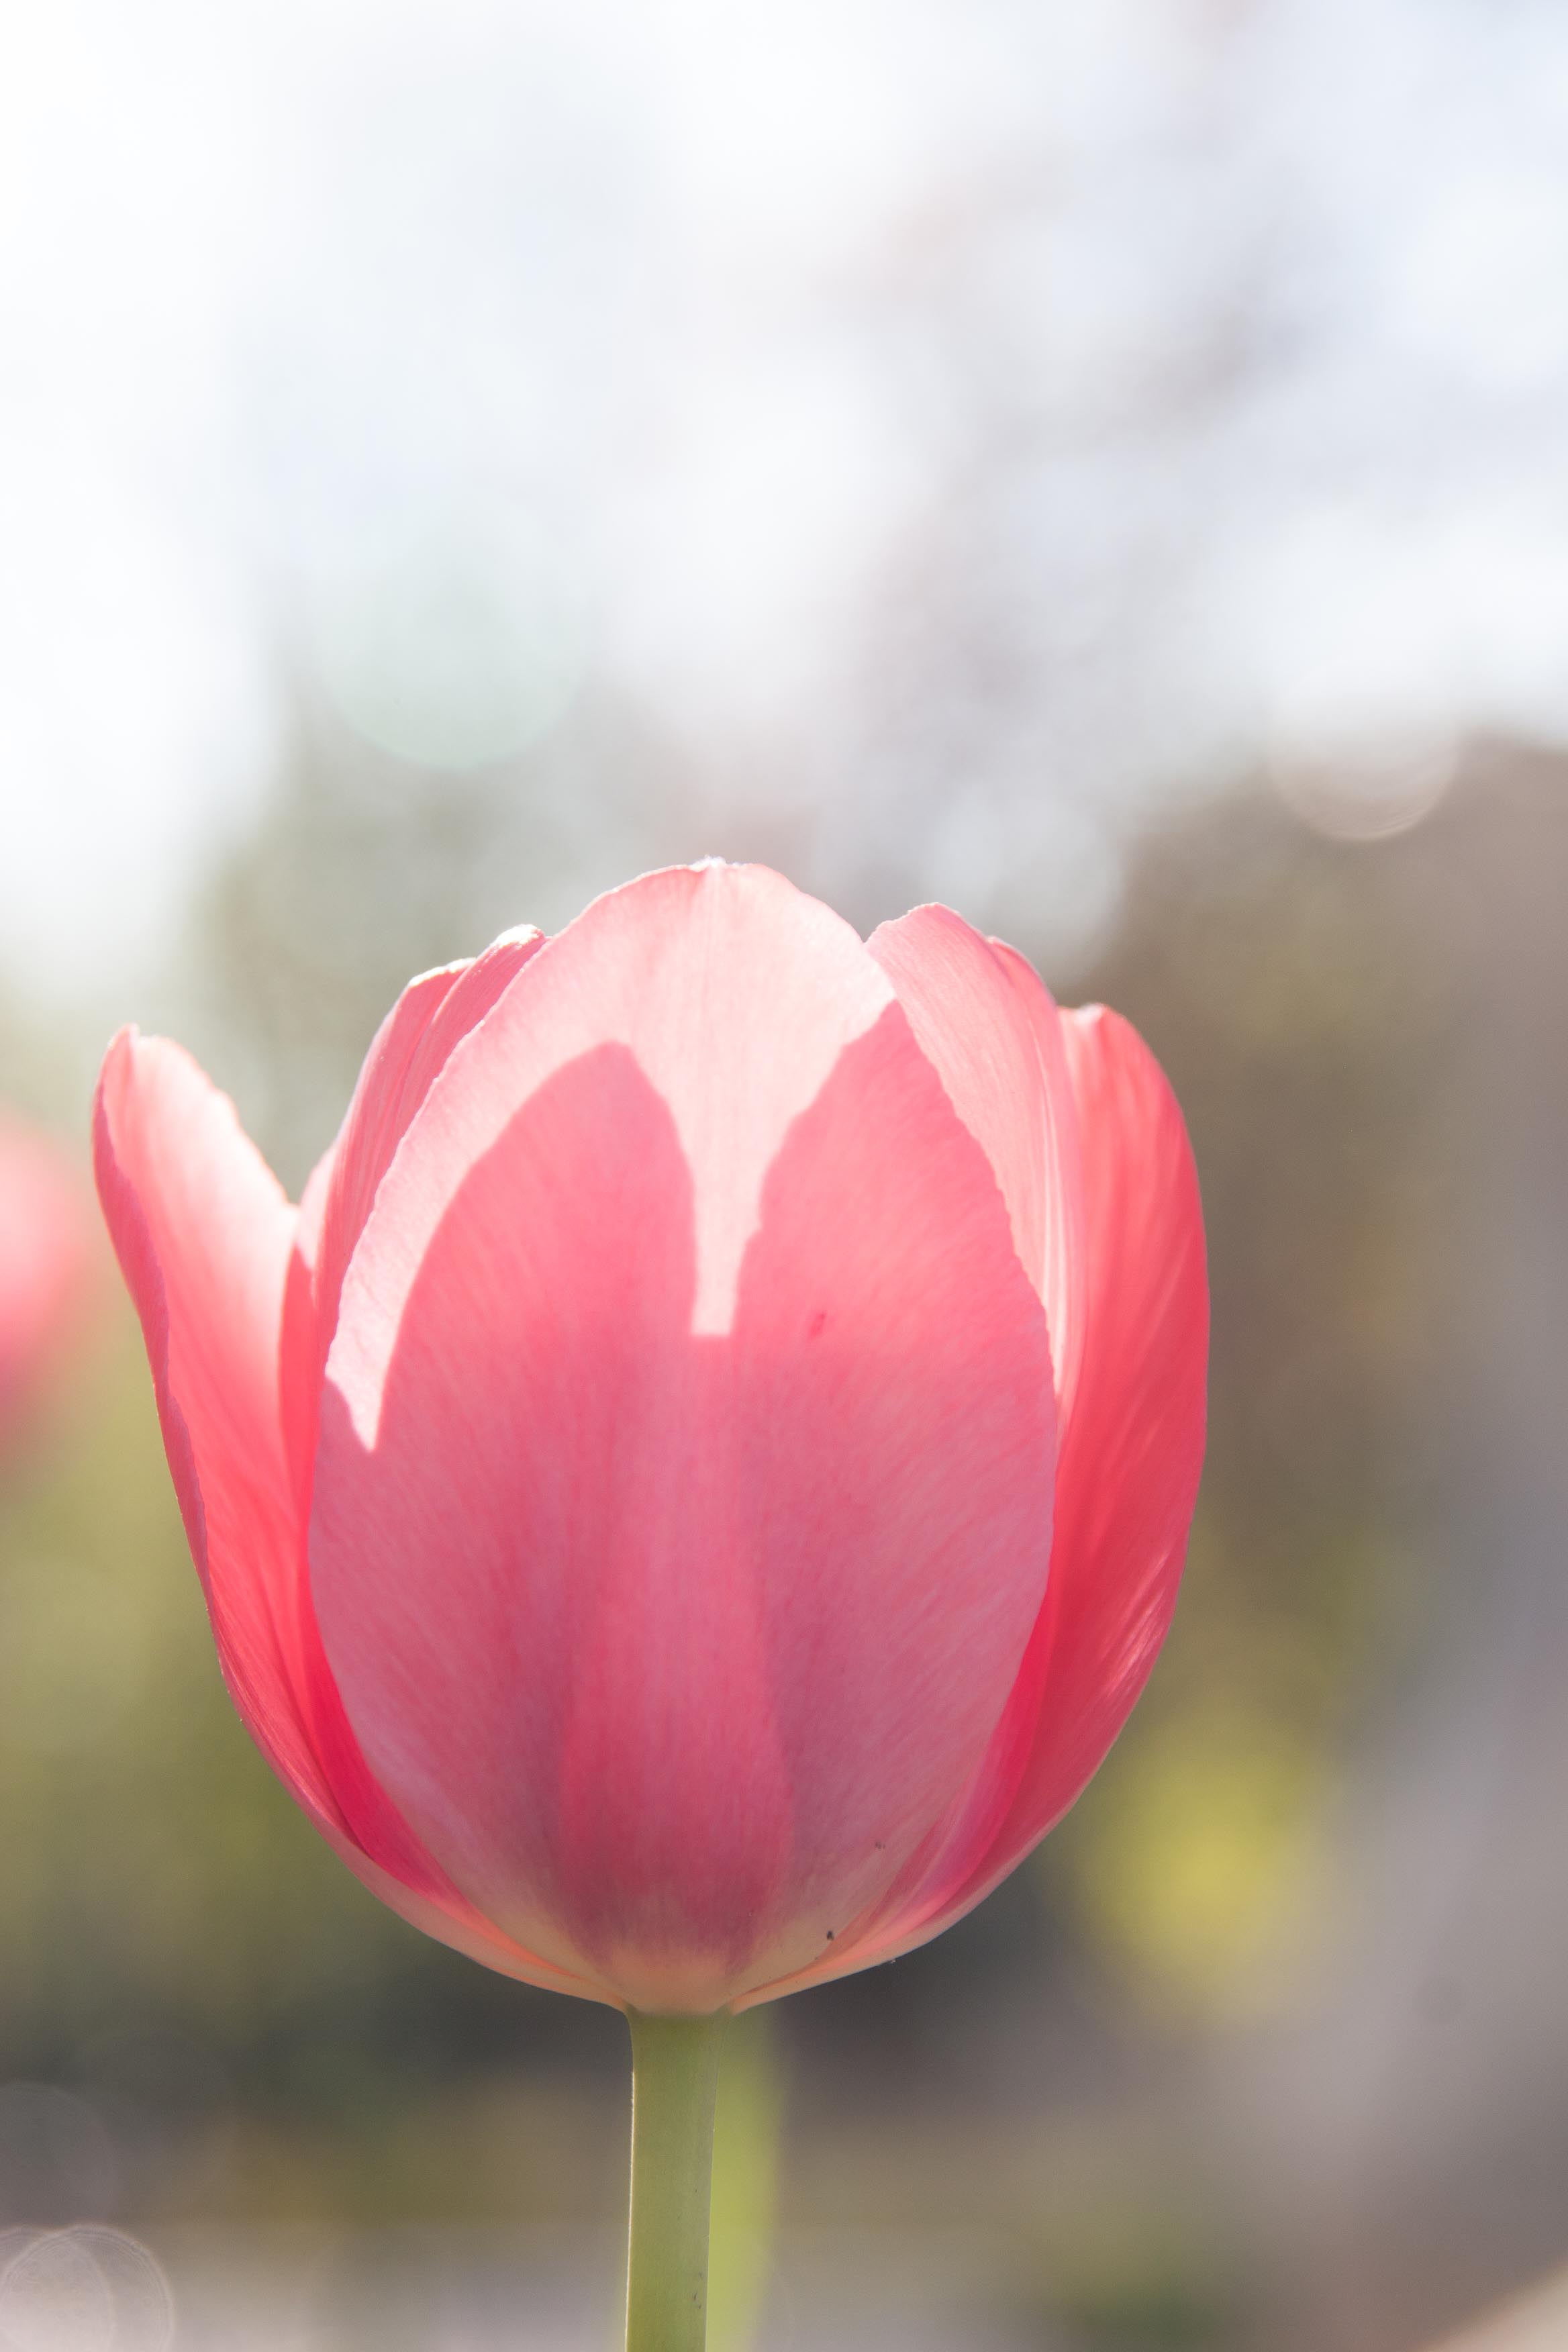 single pink tulip with soft-focus background